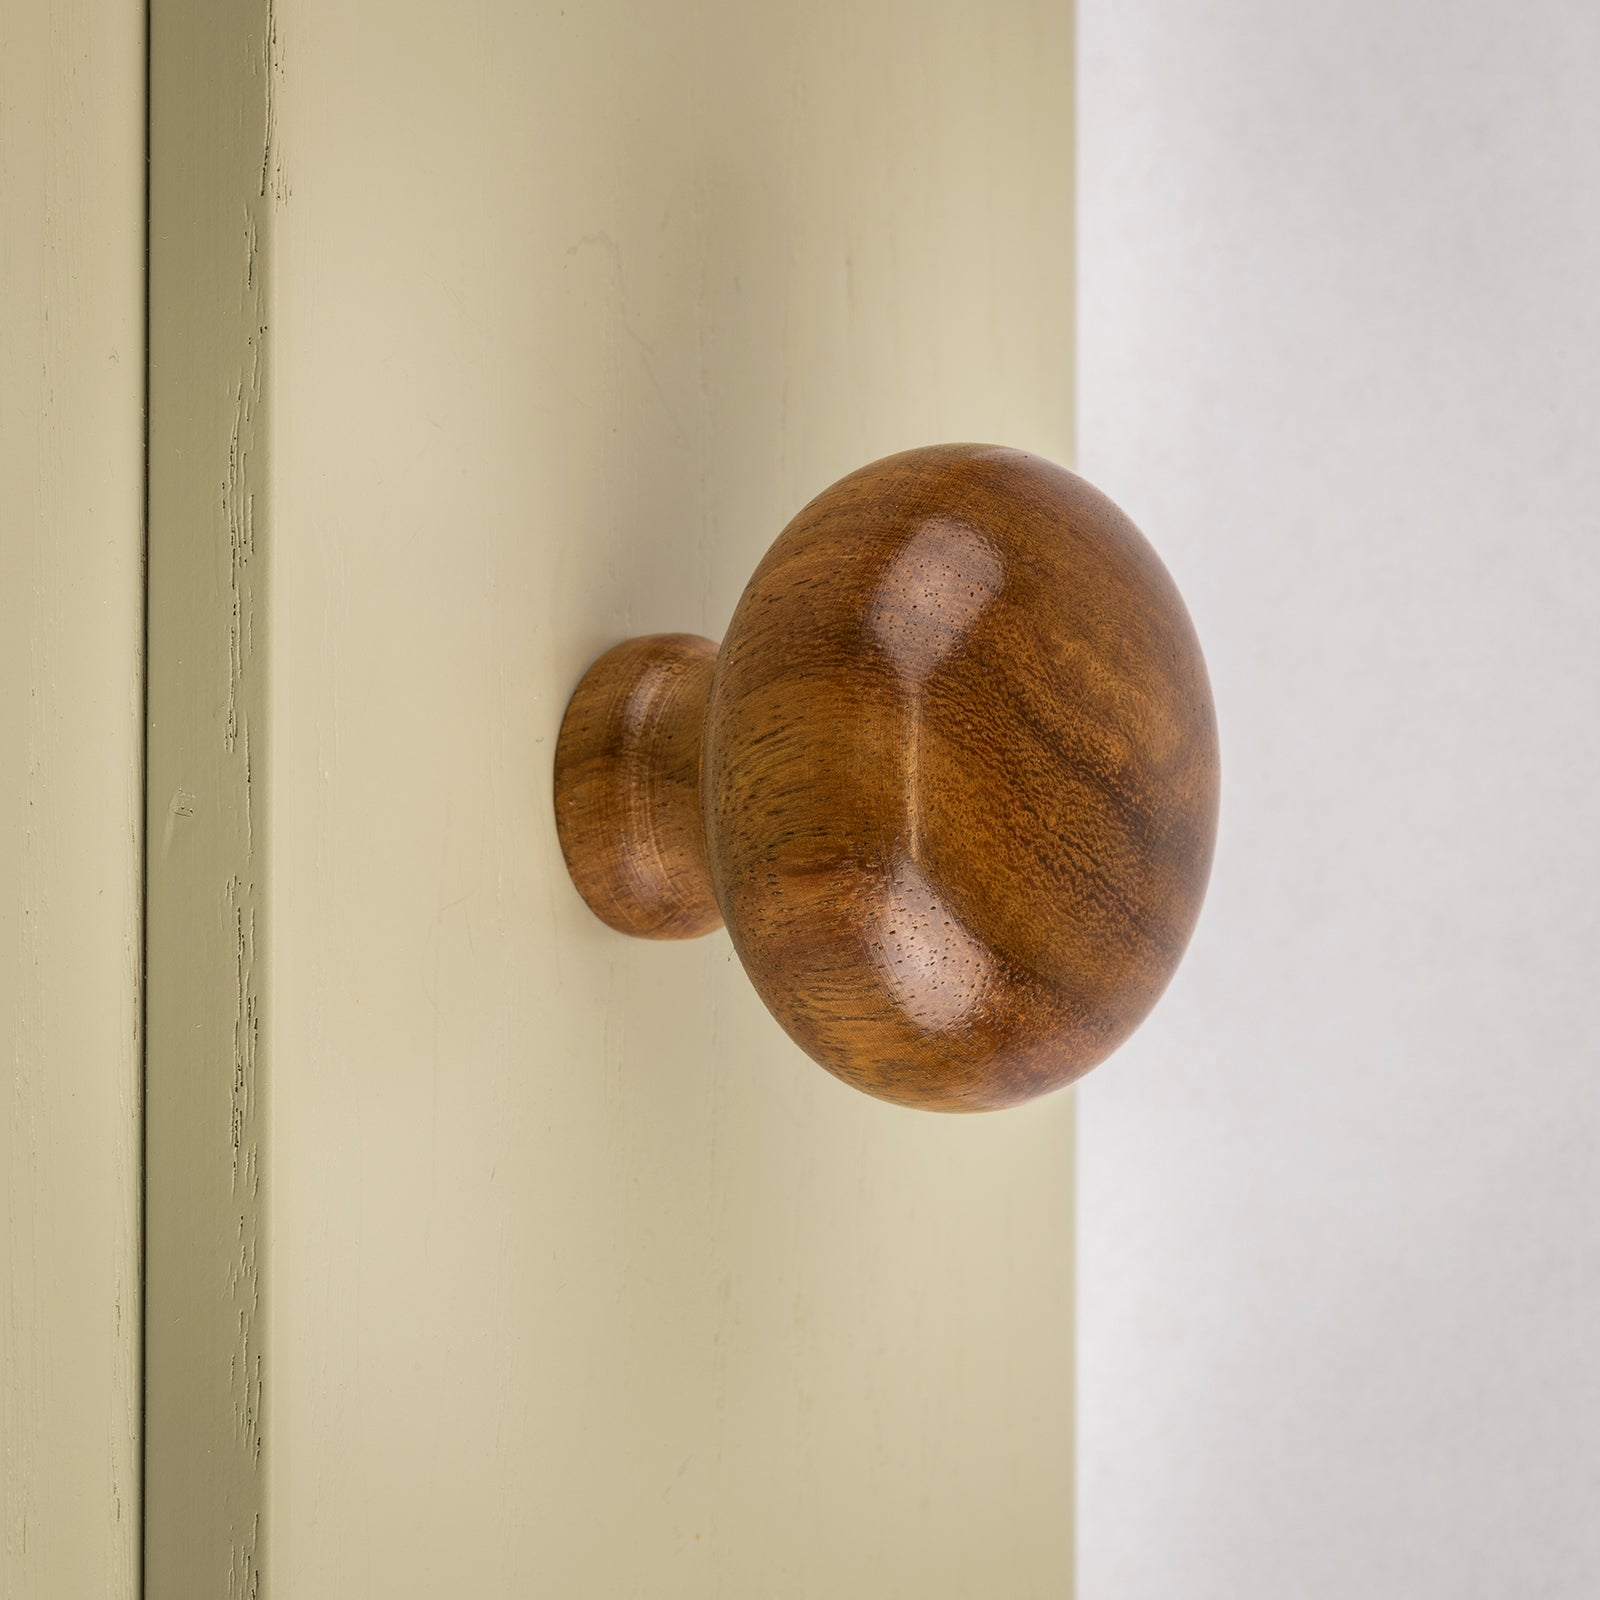 Rosewood cupboard knob SHOW